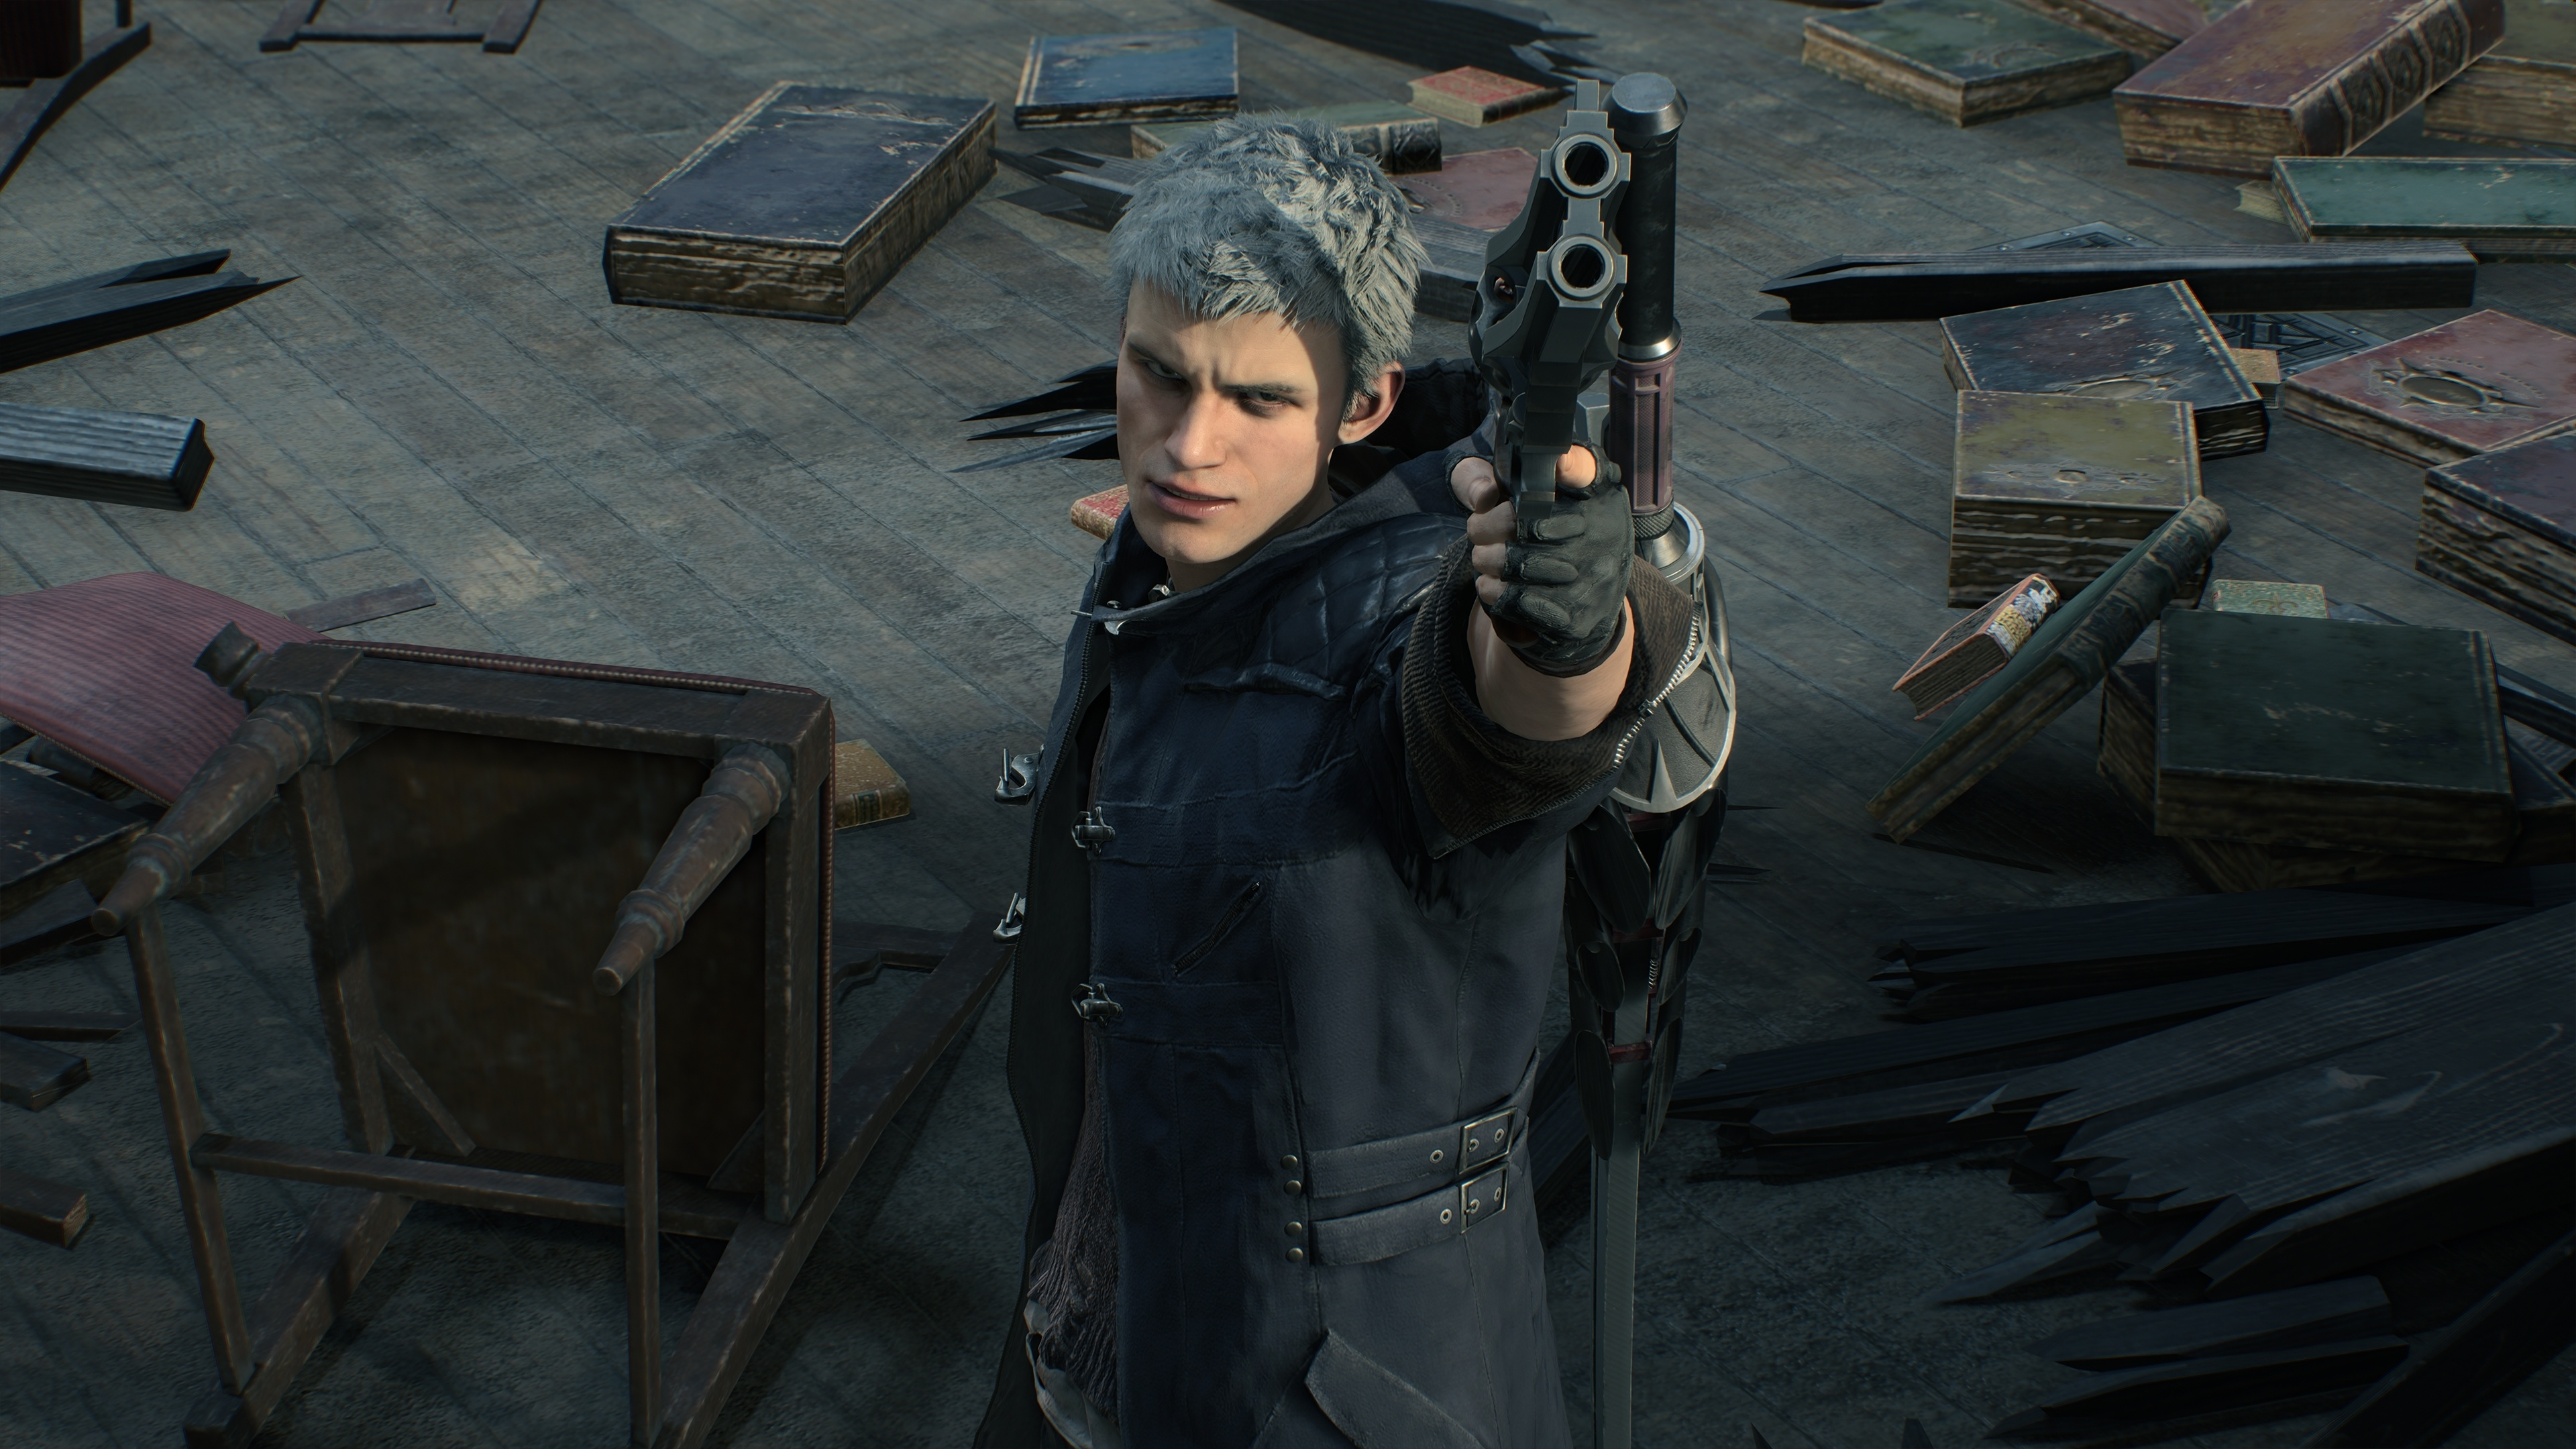 Cute Hd Wallpapers 1080p Widescreen Download 3840x2400 Wallpaper Devil May Cry 5 Video Game